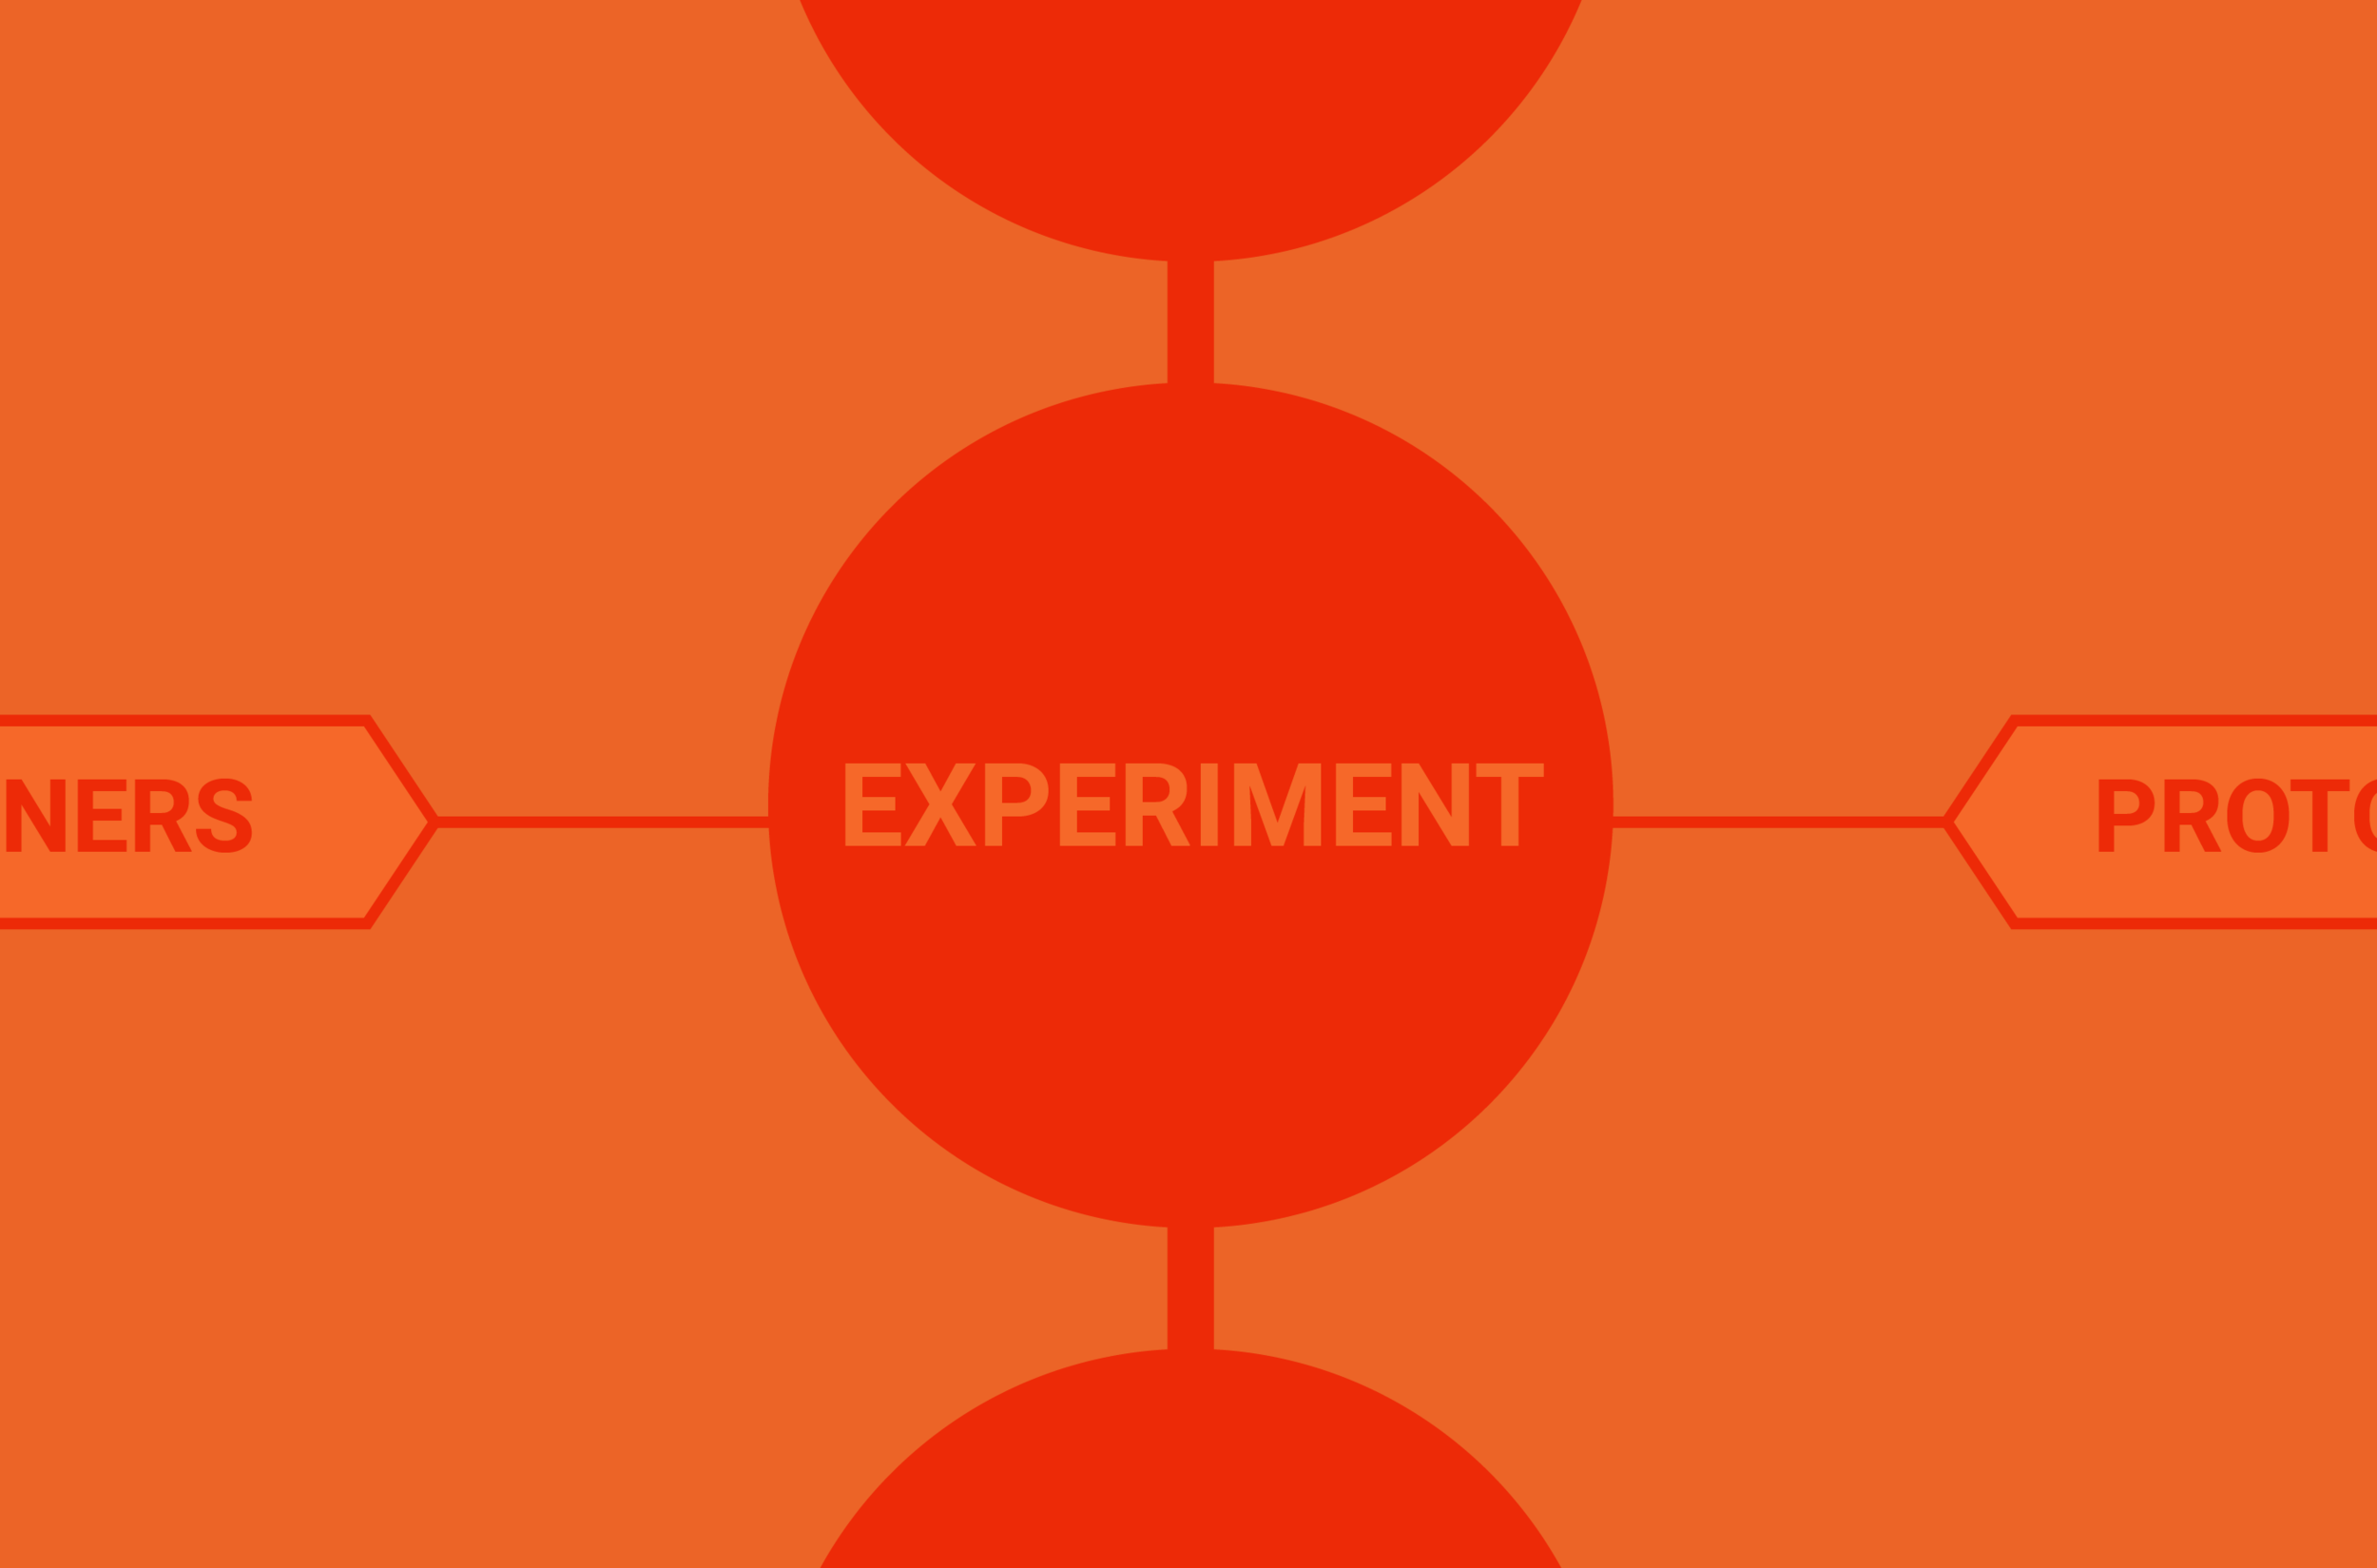 Experiment - We guide you through a lean prototyping process, where you gradually refine and improve your ideas.We also work with you to design a path to impact, outline the key partners and paramaters for launching your solution.